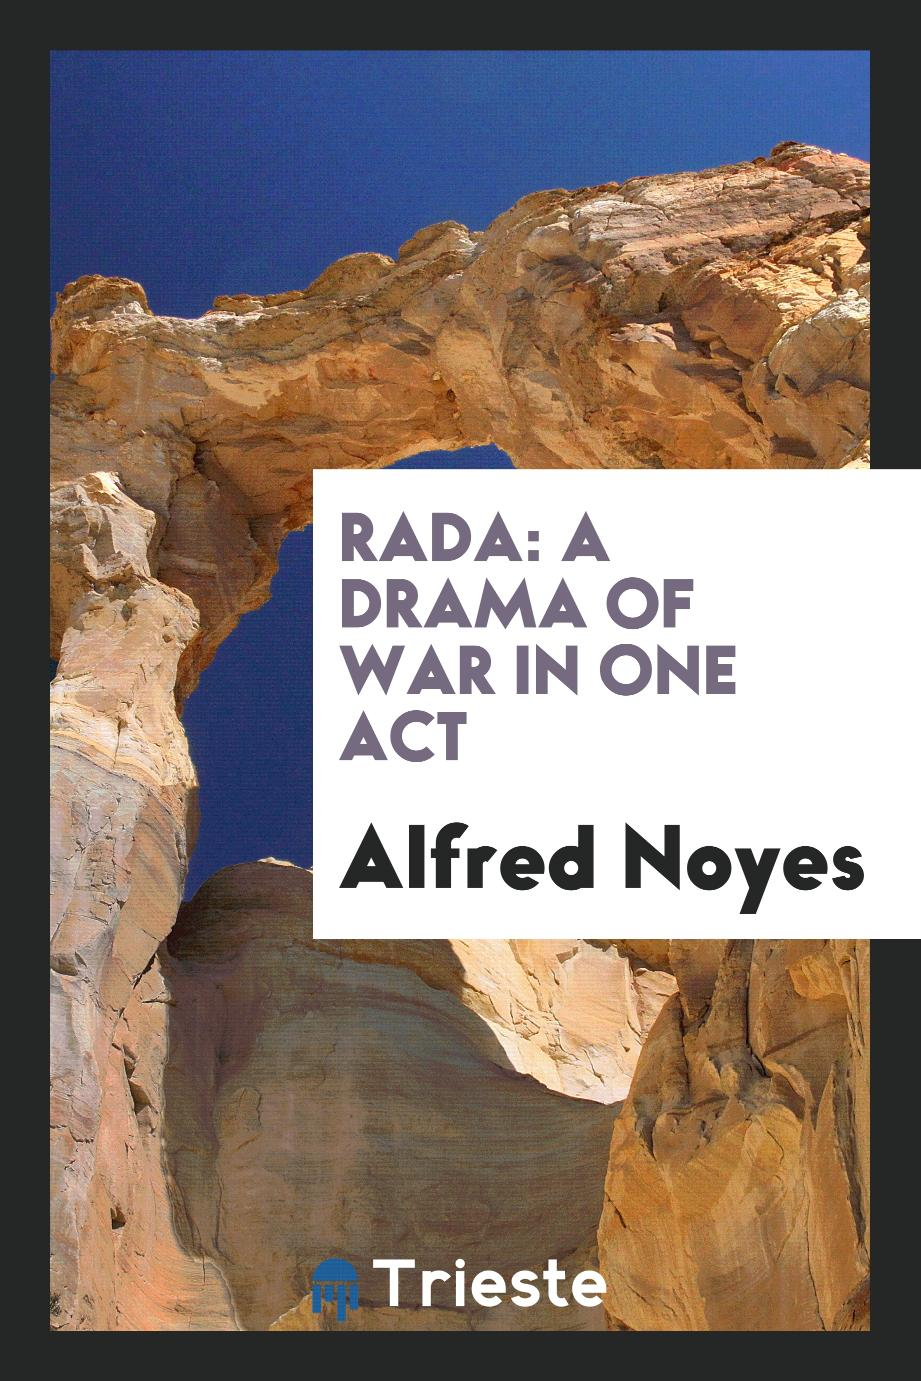 Rada: A Drama of War in One Act